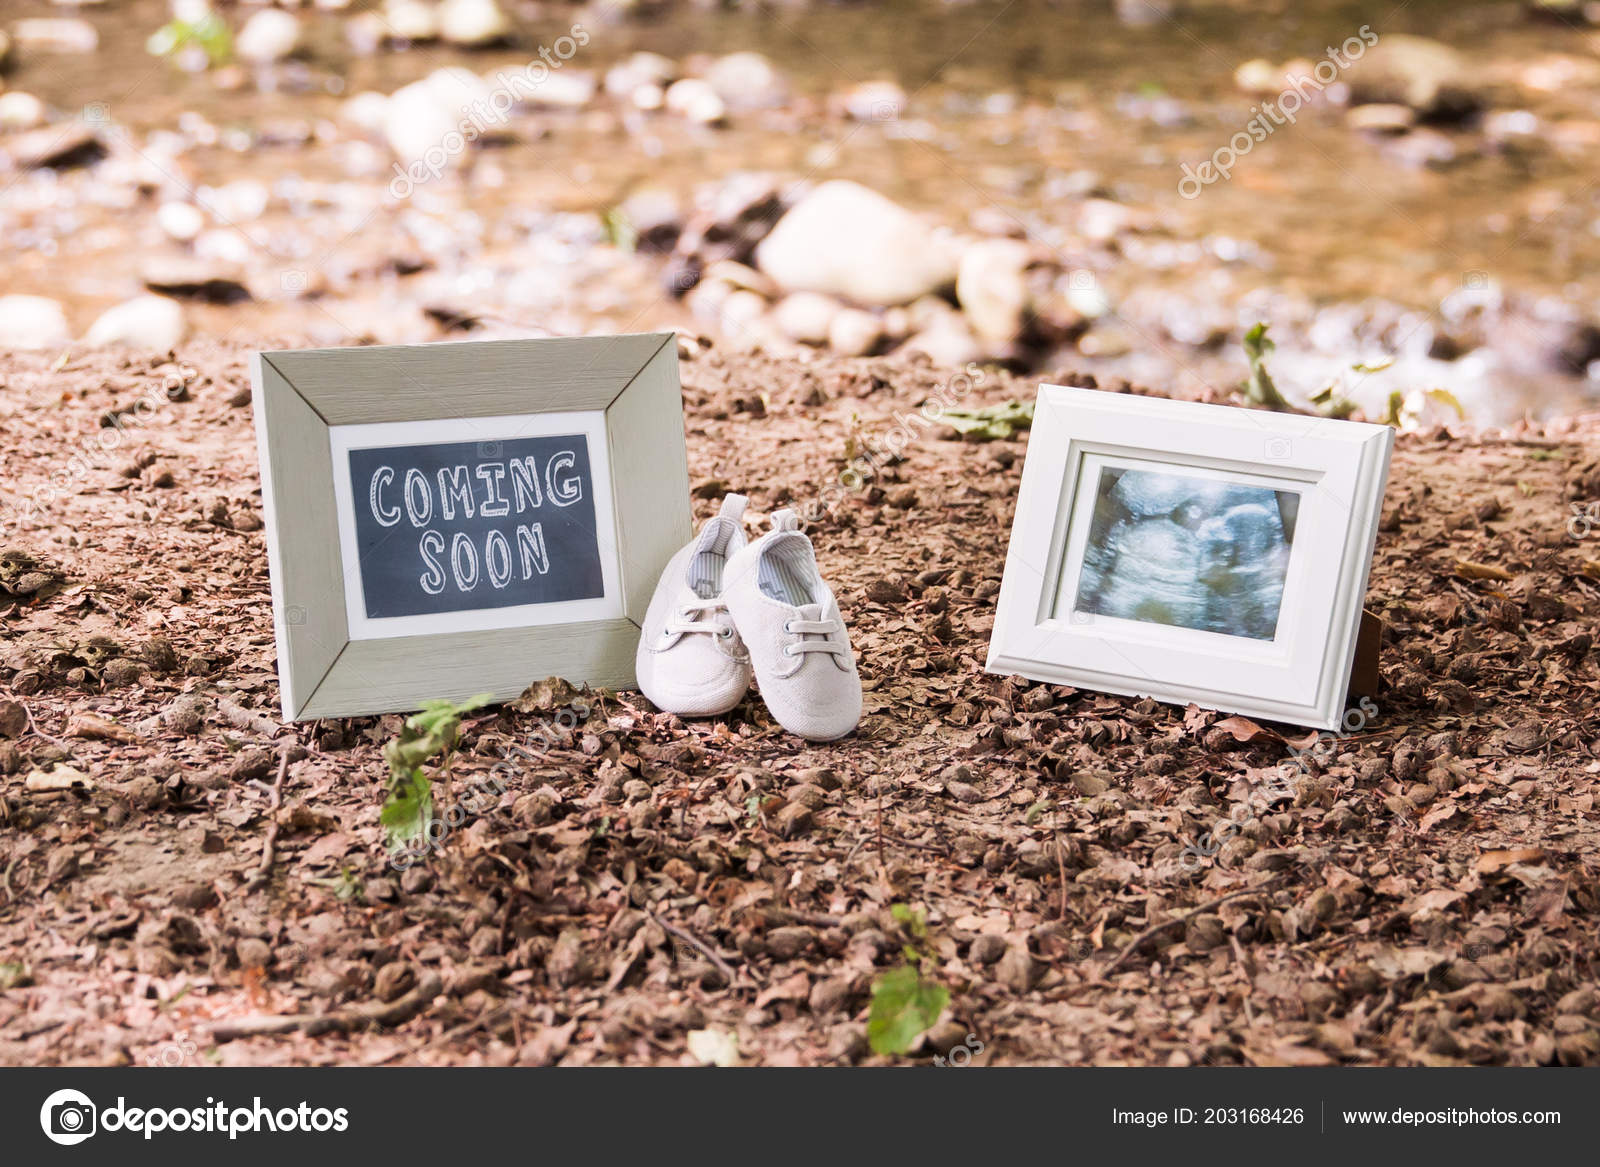 Baby Coming Soon Wallpaper Baby Ultrasound Coming Soon Photo Frames Baby Shoes Stock Photo C Angelina Cecchetto 203168426